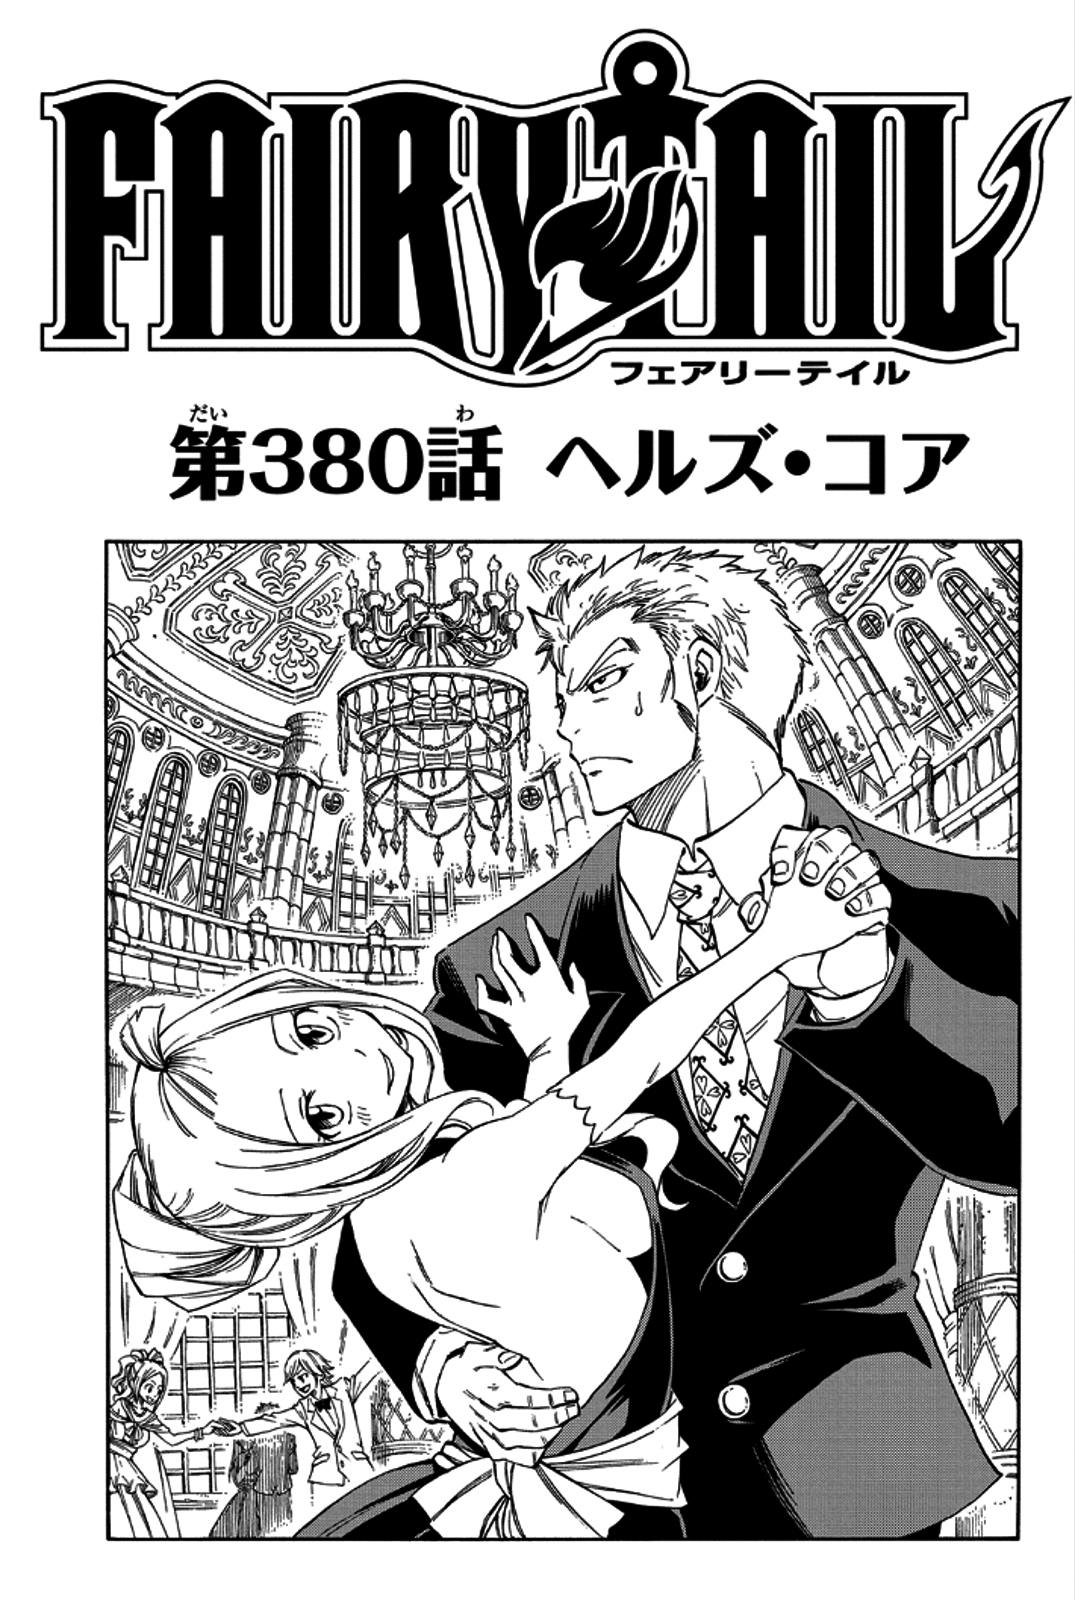 Latest Fairy Tail Chapter